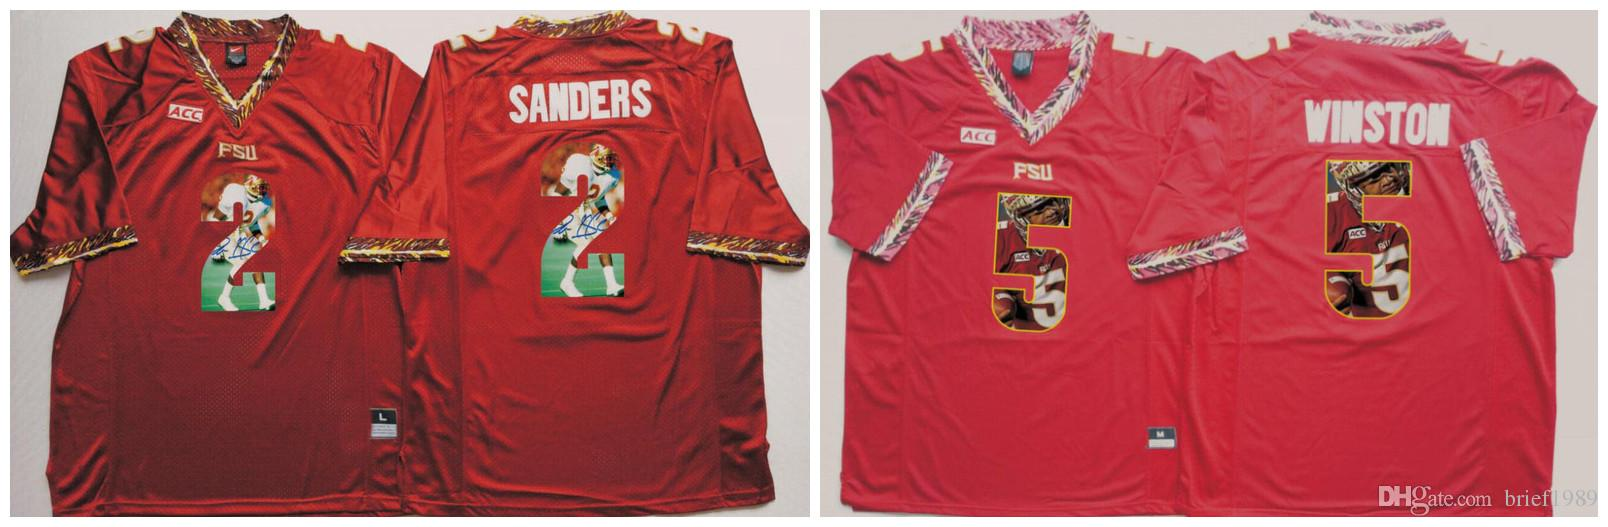 online store 9850d 3db51 youth ncaa jerseys florida state seminoles 2 deion sanders ...